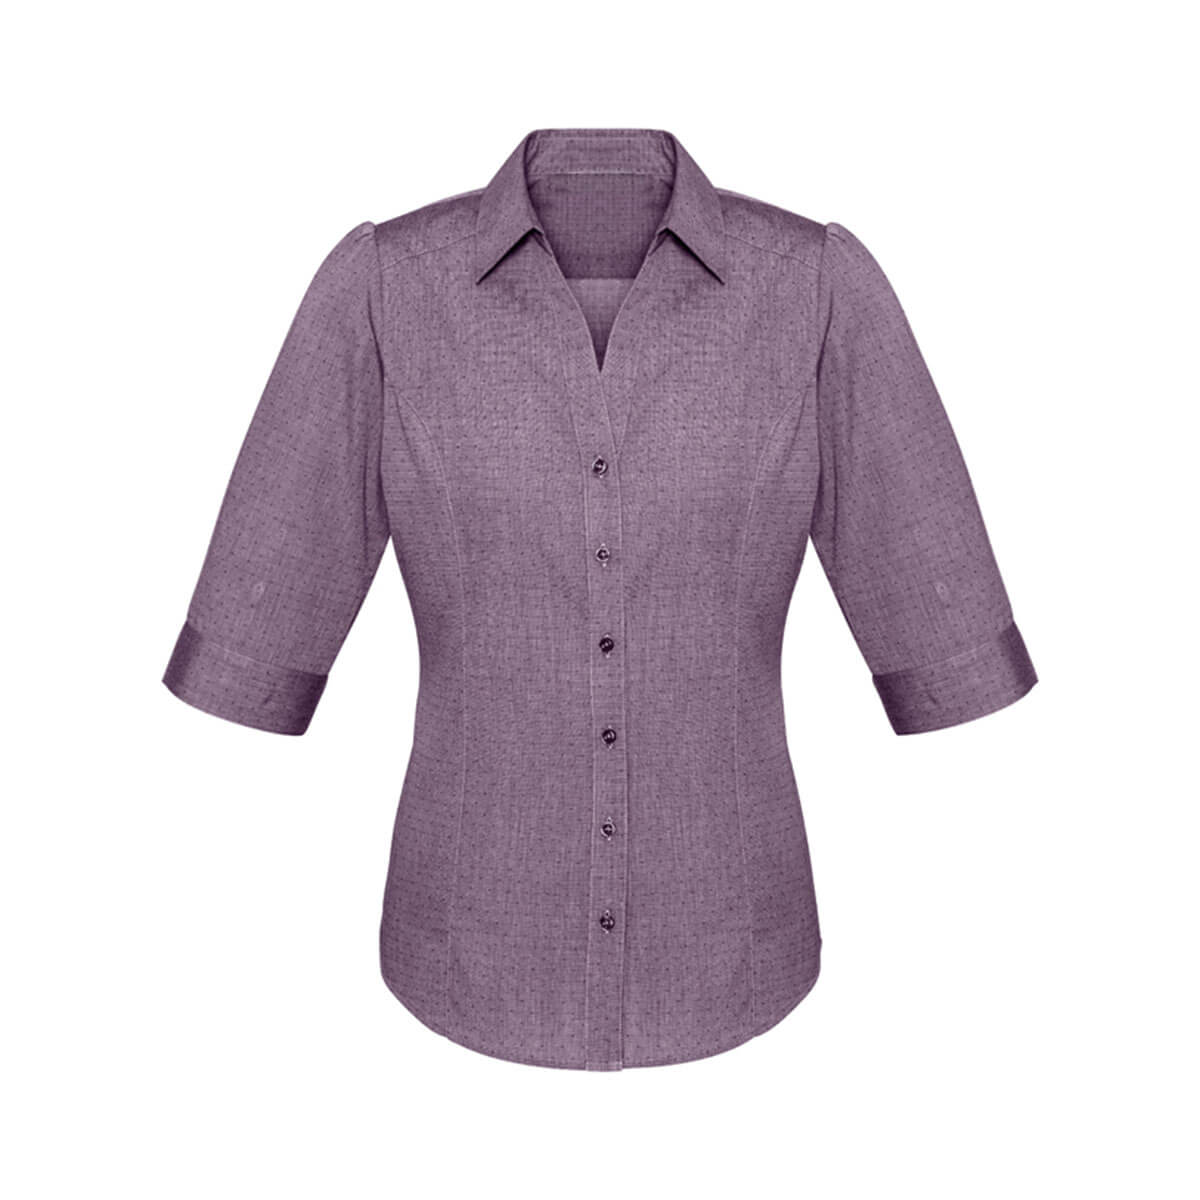 Ladies Trend 3/4 Sleeve Shirt-Plum